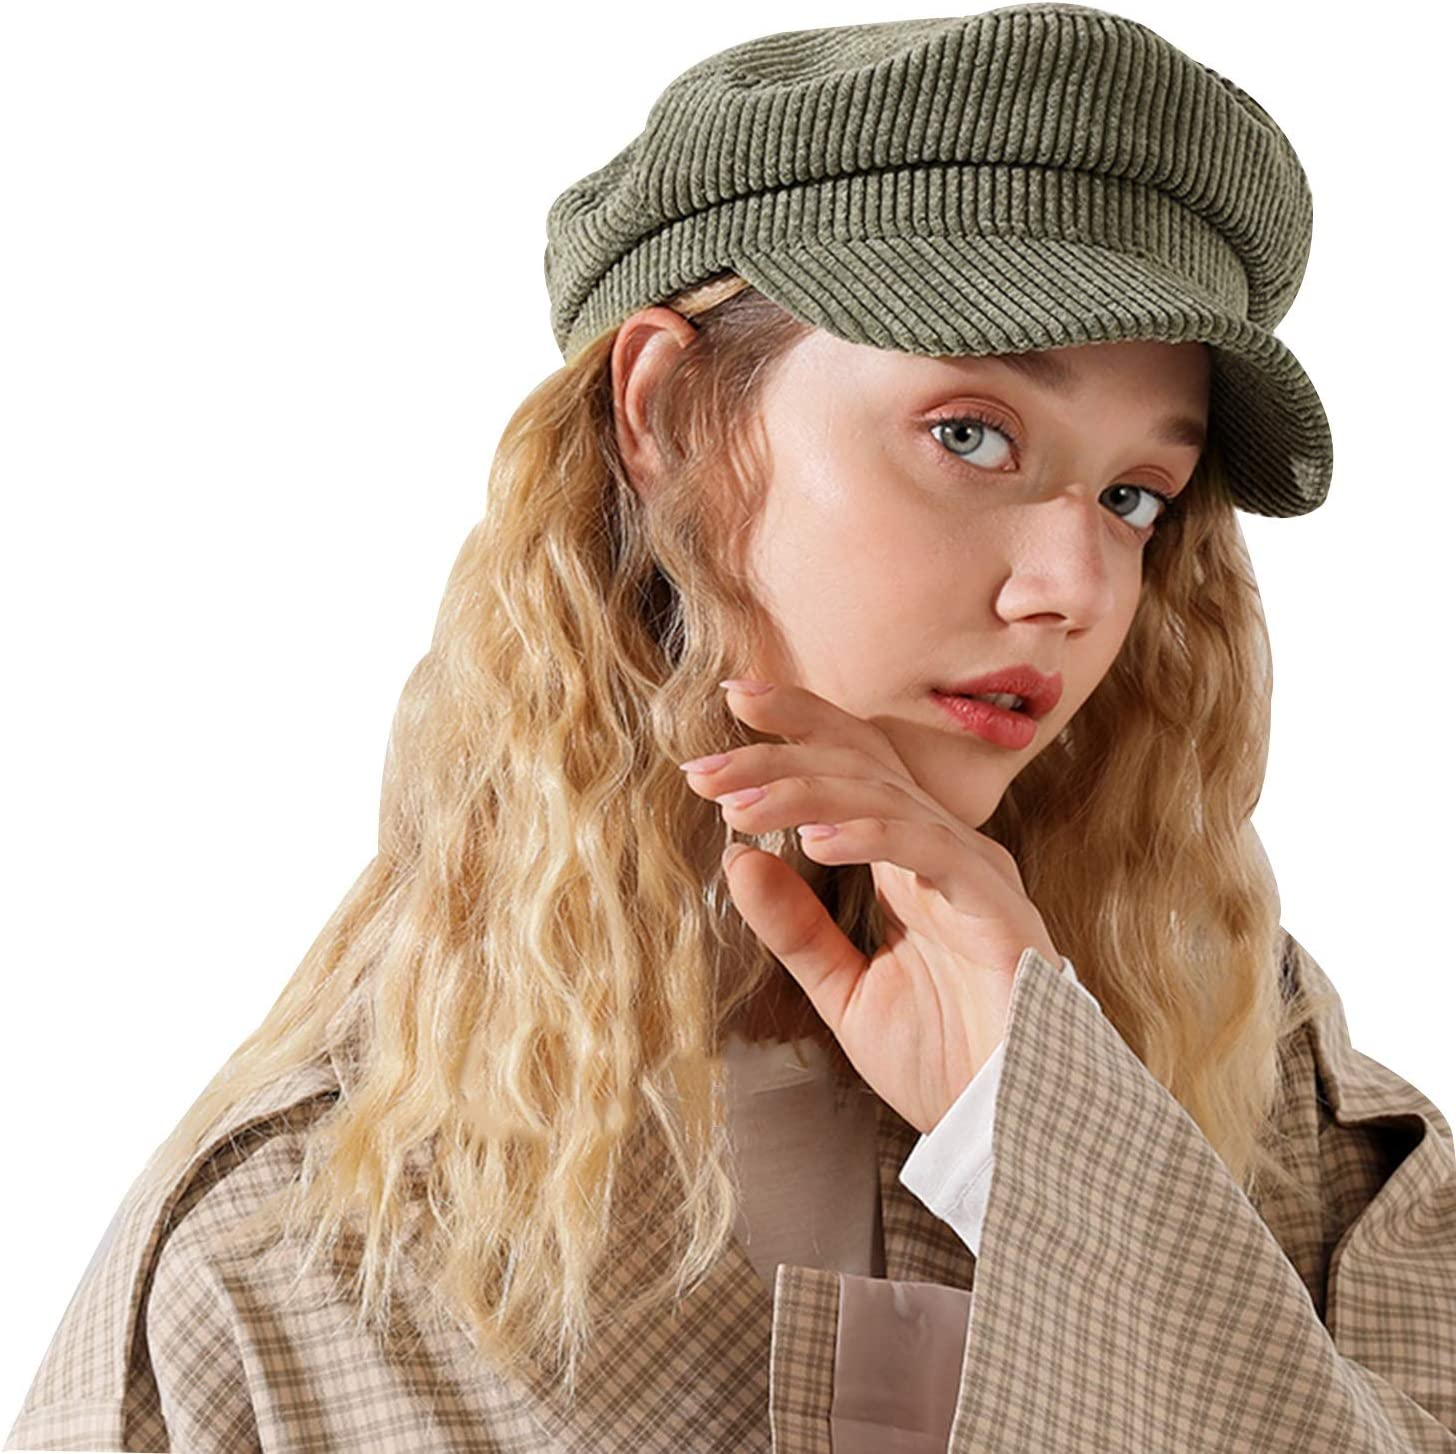 FOLDING Hats Caps Wool Newsboy Hat Winter Hat Visor Beret Cold Weather Knitted (Color : Army Green)